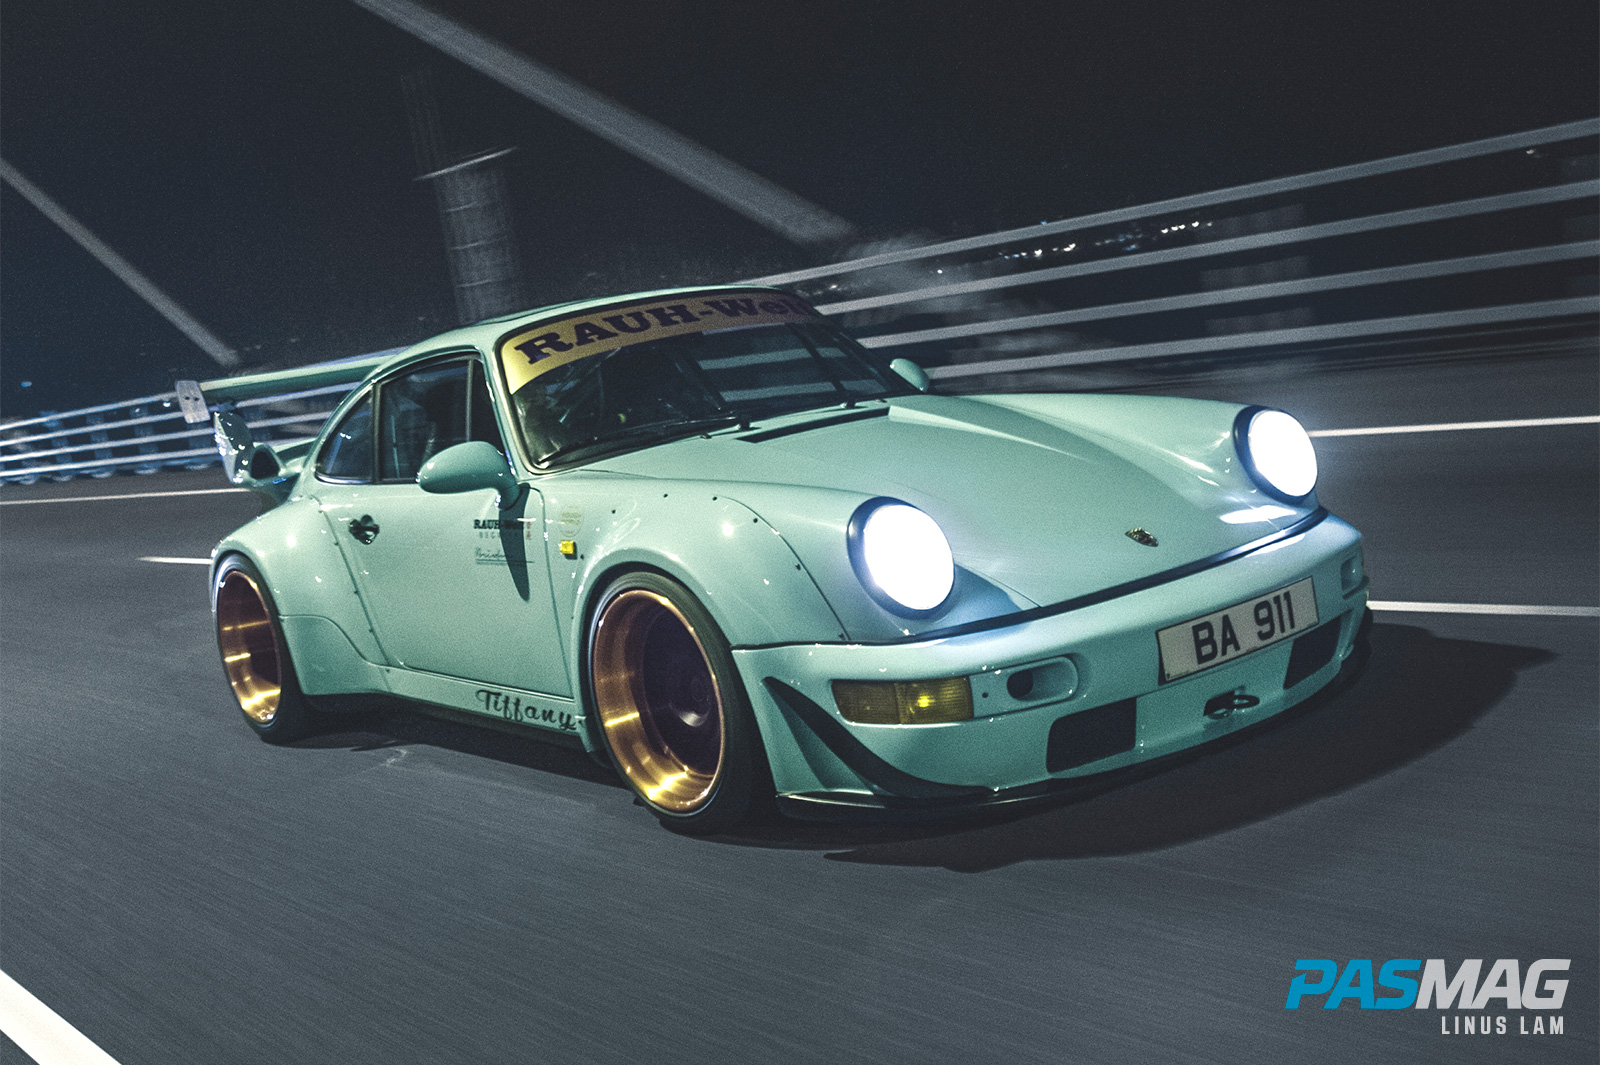 ReinART.Design 1990 Porsche 911 964: RWB HK Tiffany (Photo by Linus Lam)